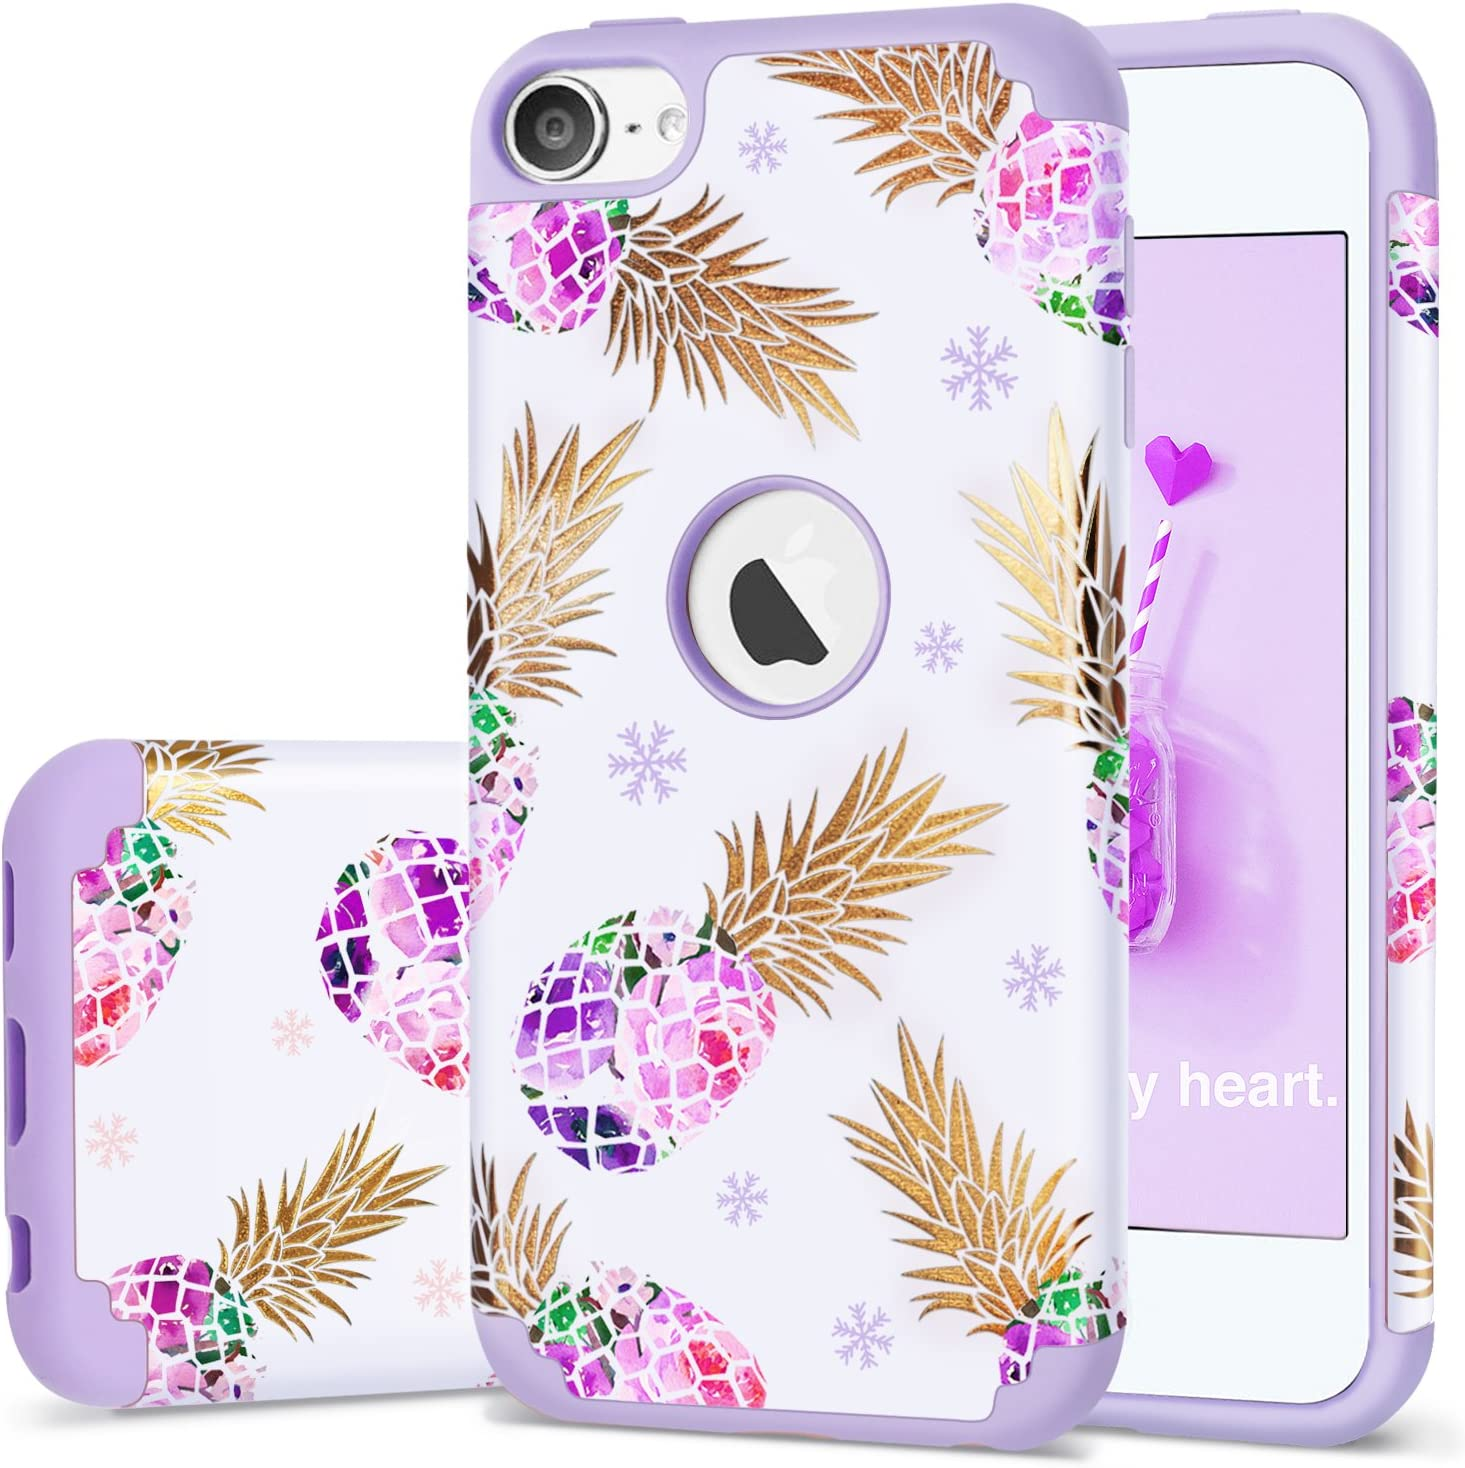 iPod Touch 5 Case,iPod 6 Pineapple Case,Fingic Floral Ultra Slim Case Hard PC Soft Silicone Protective Case Cover for Apple iPod Touch 5/6th Generation,Pineapple/Purple